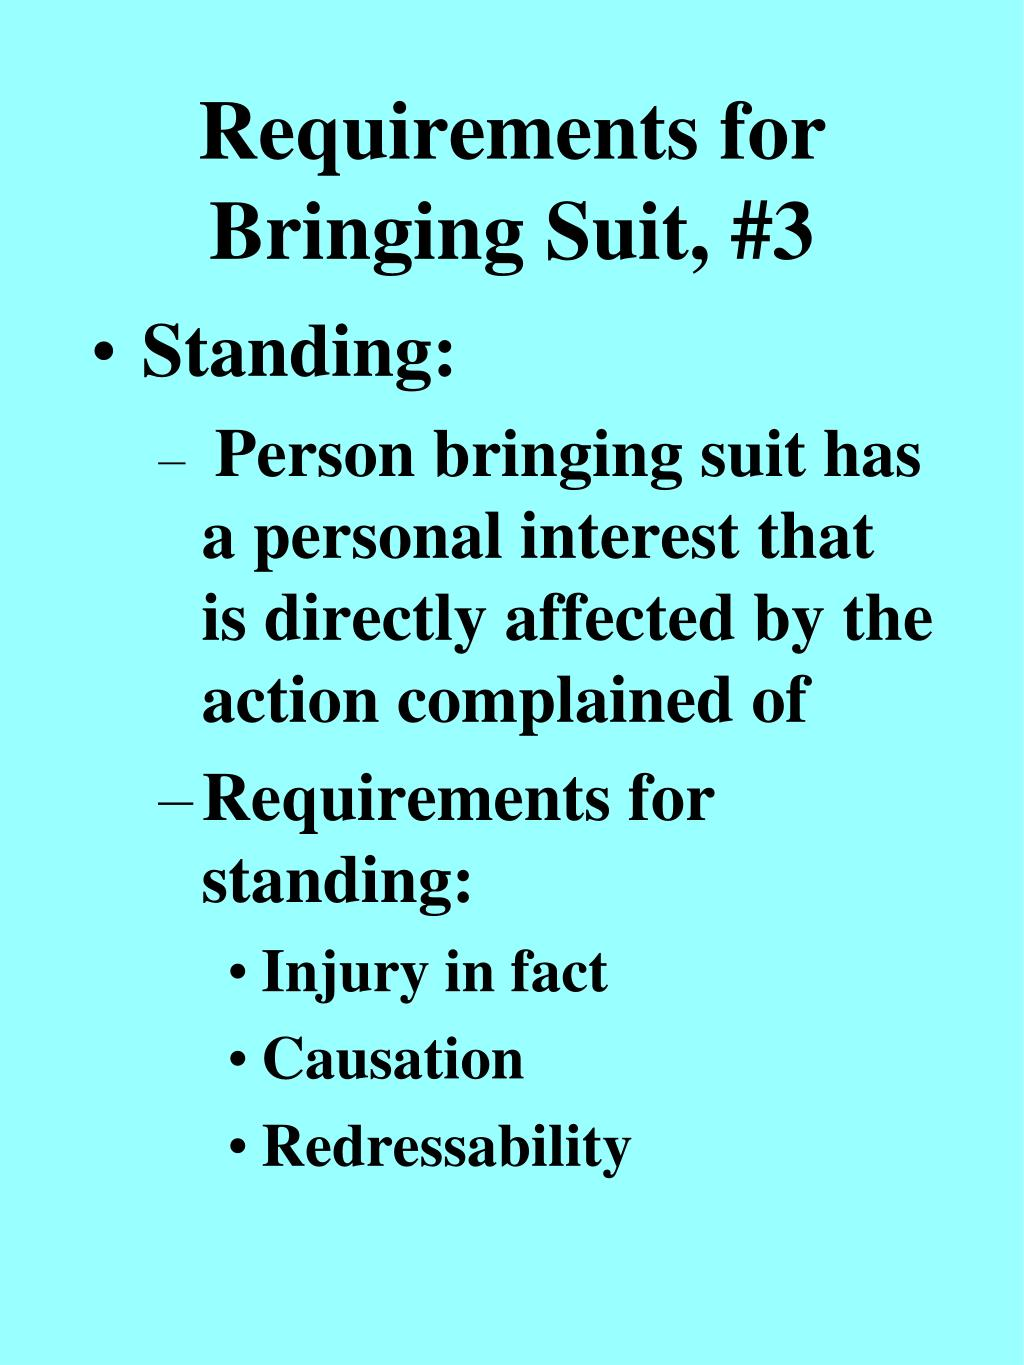 Requirements for Bringing Suit, #3